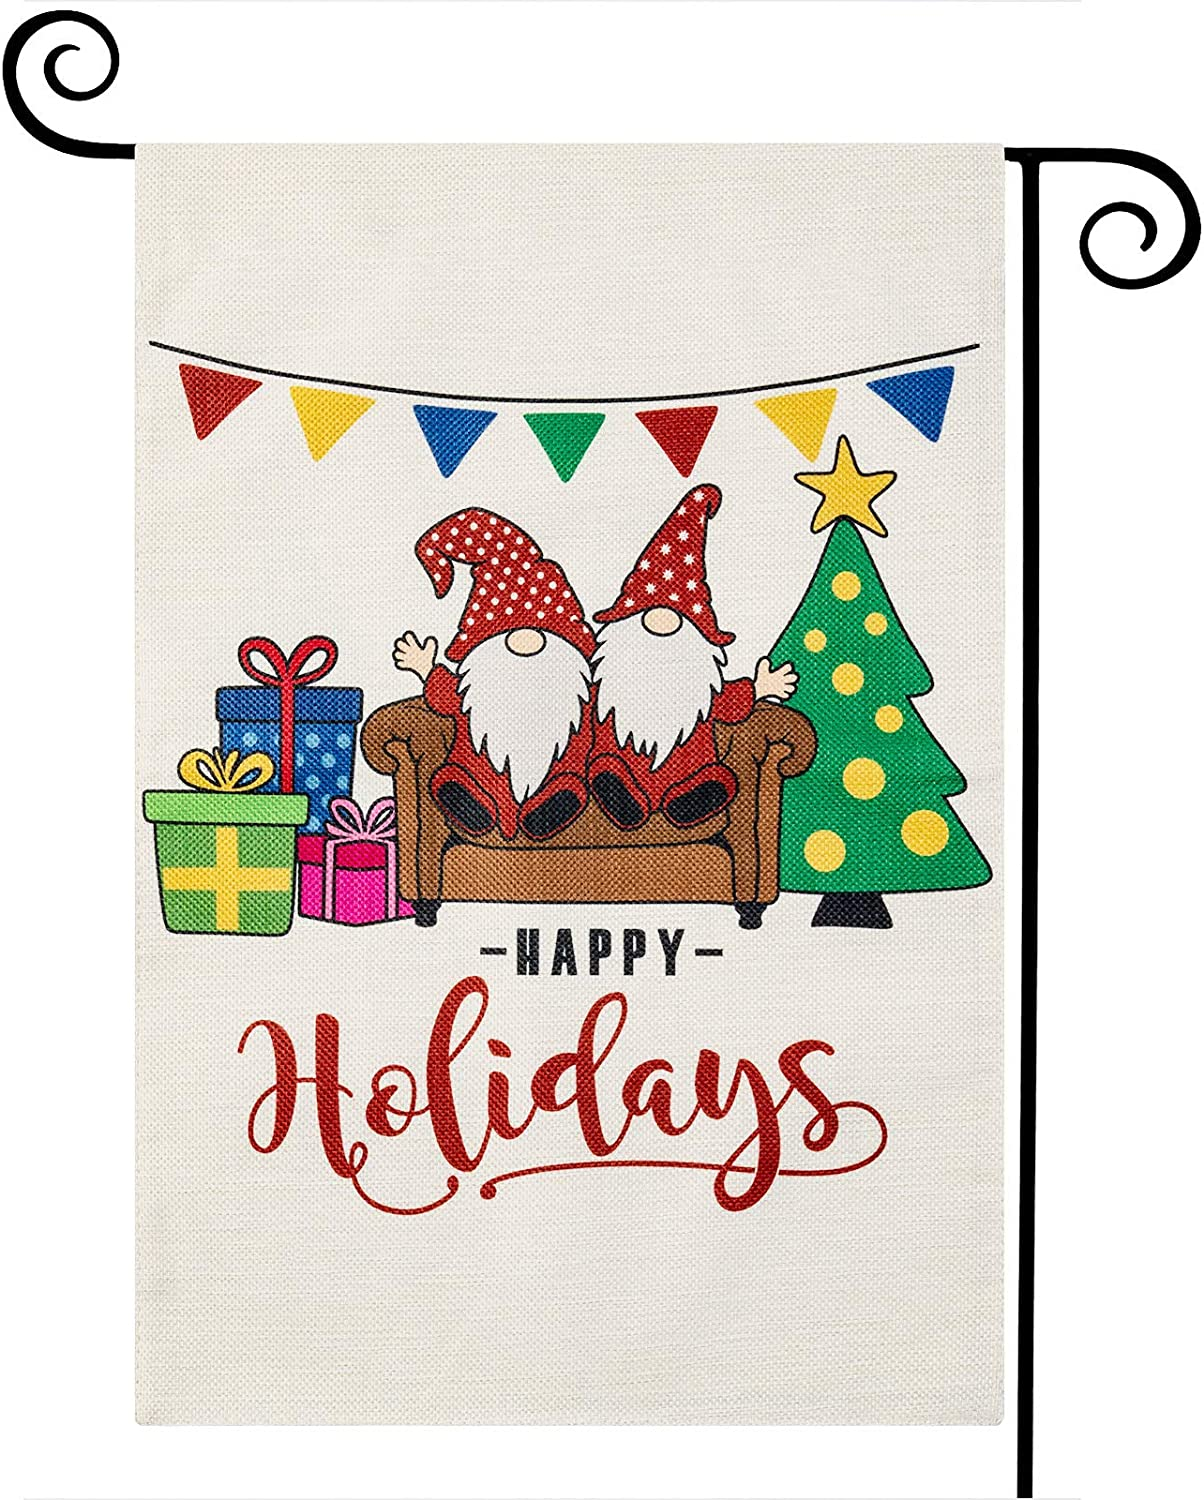 LARMOY Christmas Happy Holidays Garden Flag 12 x 18 Inch Double Sided, Small Lovely Gnome Winter Burlap Yard Flags for Xmas Outdoor Decoration